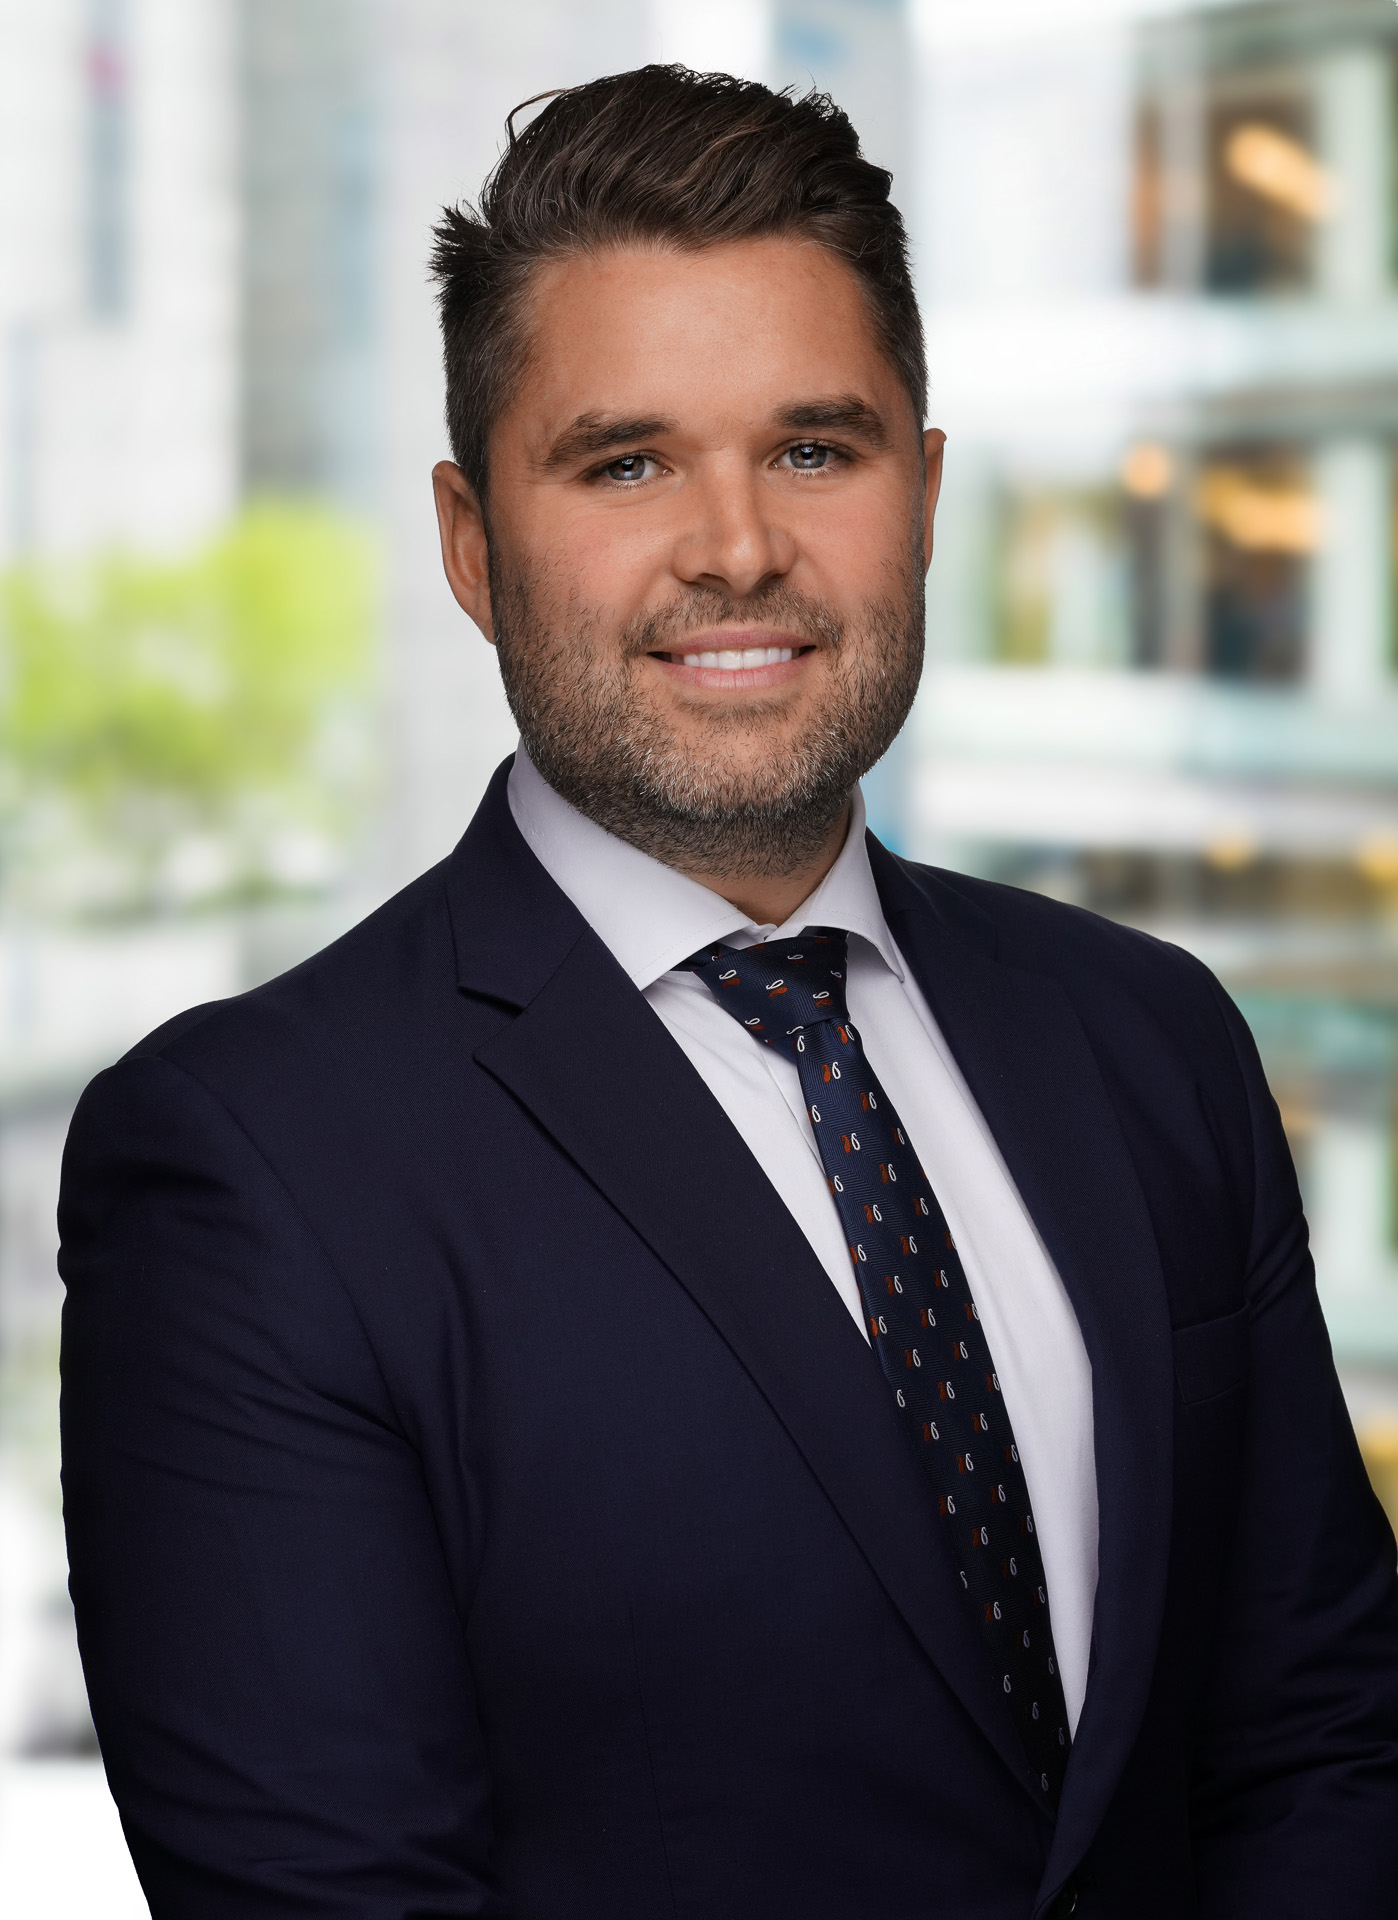 Formal Auckland Corporate Headshot